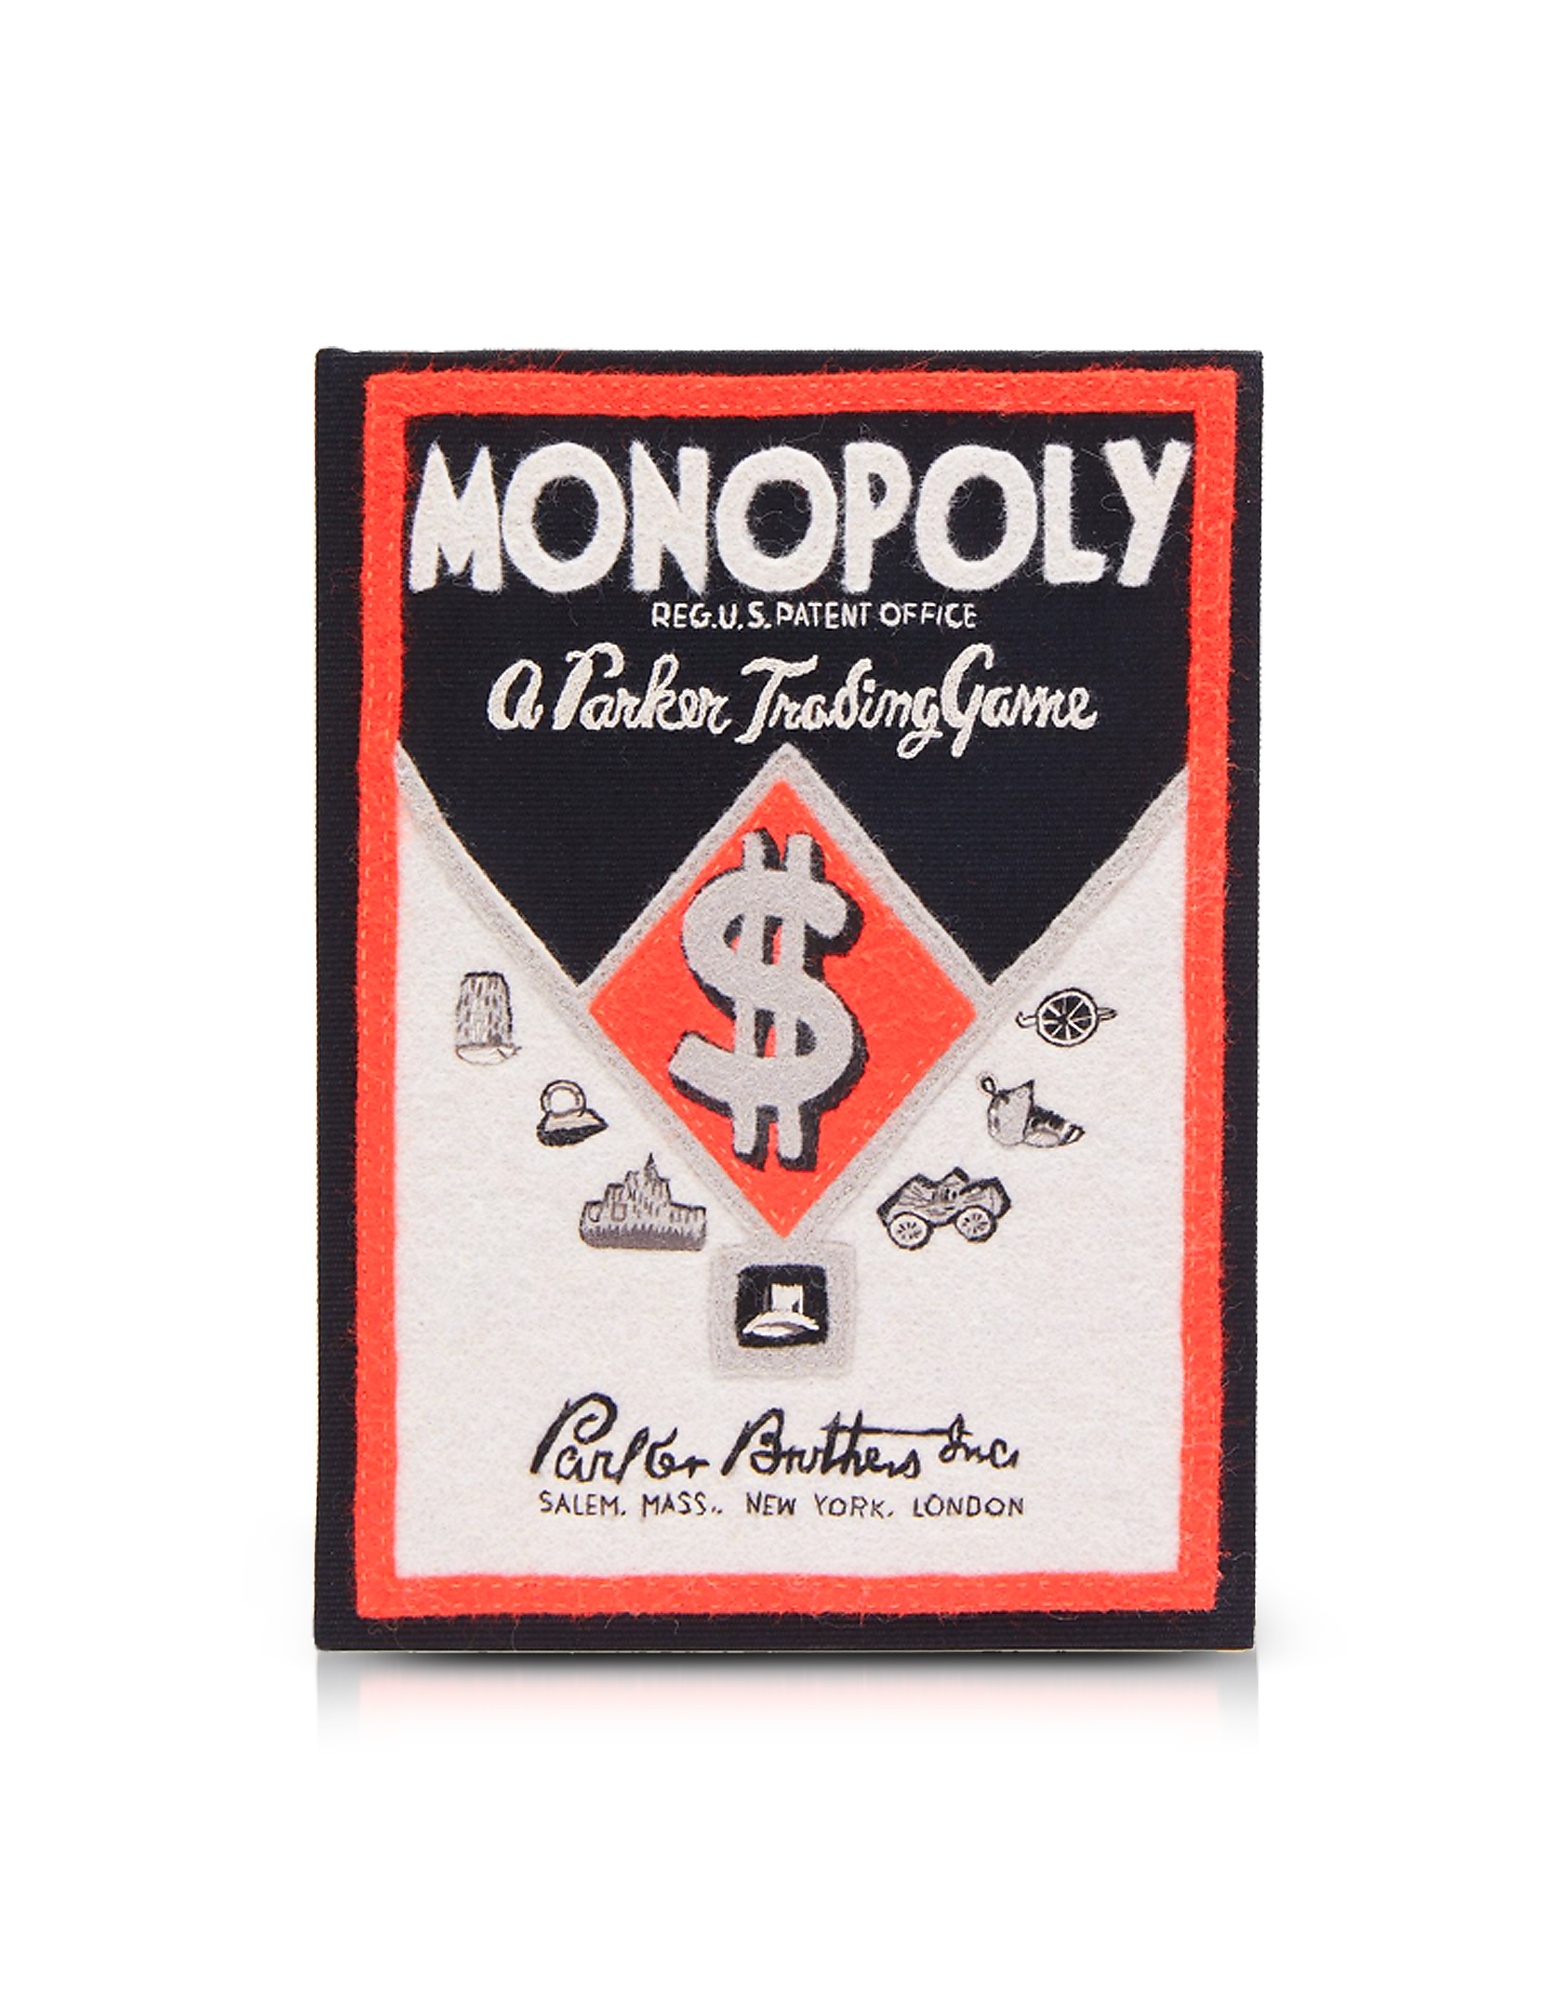 Monopoly Parker Tarding Game Book Clutch in Cotone e Feltro Ricamata in Seta